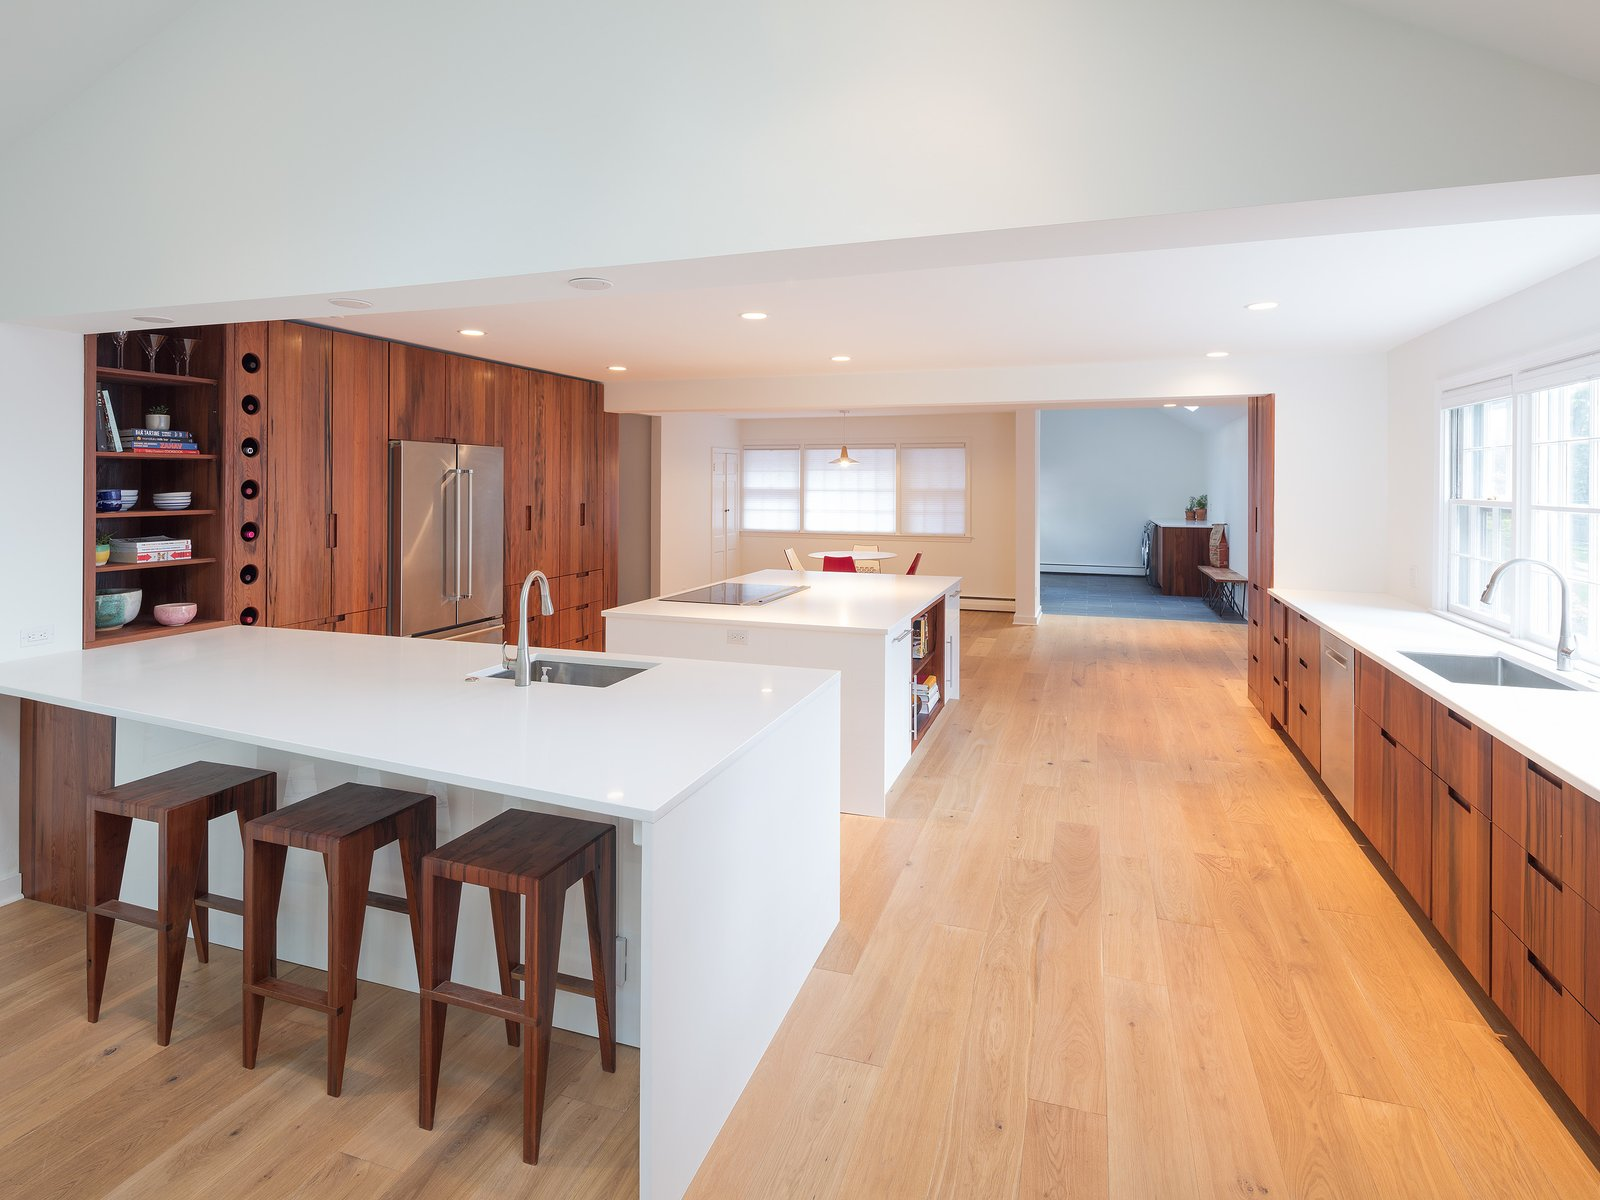 Kitchen, Refrigerator, Engineered Quartz Counter, White Cabinet, Cooktops, Wood Cabinet, Light Hardwood Floor, Recessed Lighting, and Undermount Sink contrasting high gloss quartz counters with reclaimed American redwood cabinet fronts  Wayne Residence